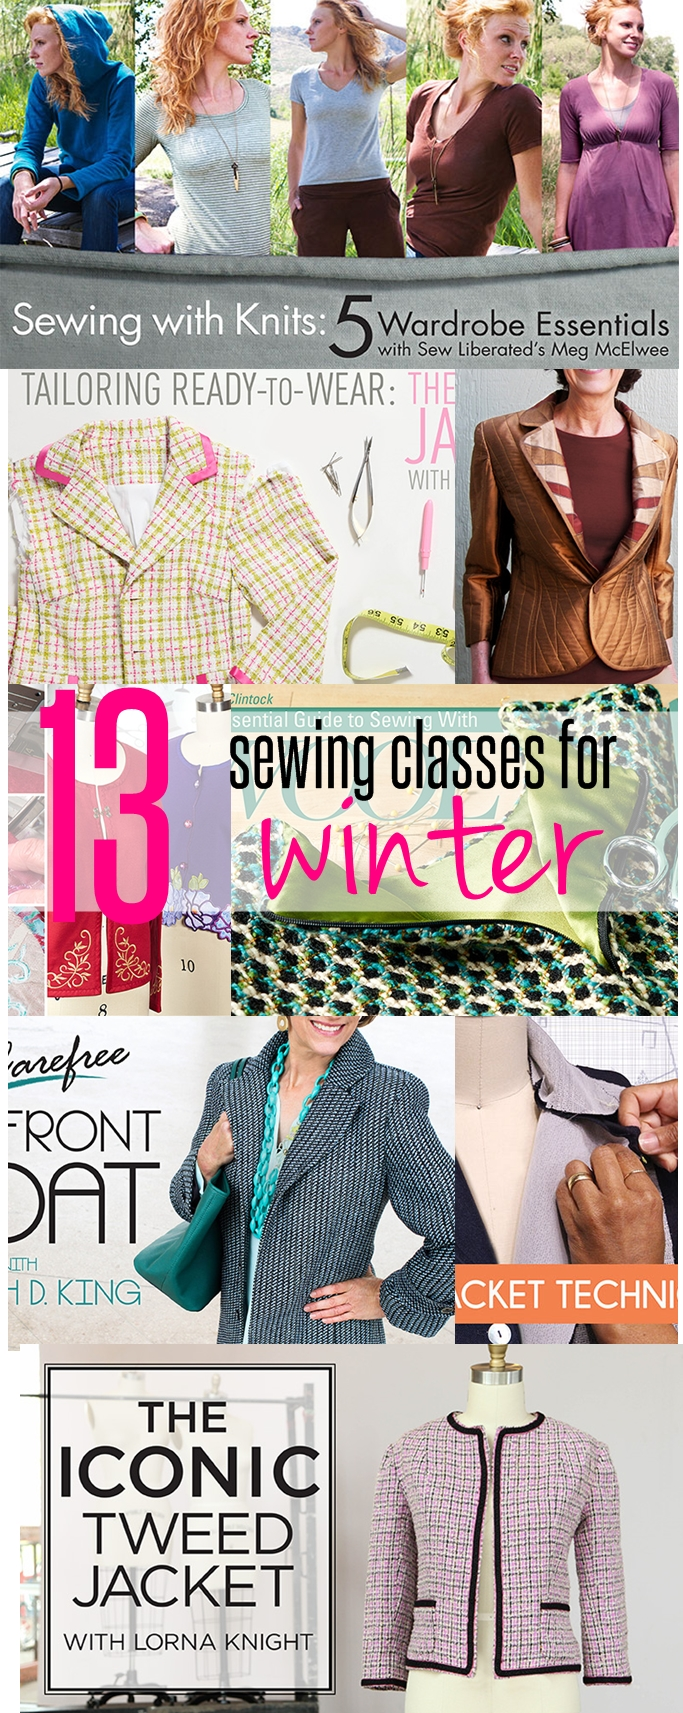 13 sewing classes for winter on sewsomestuff.com